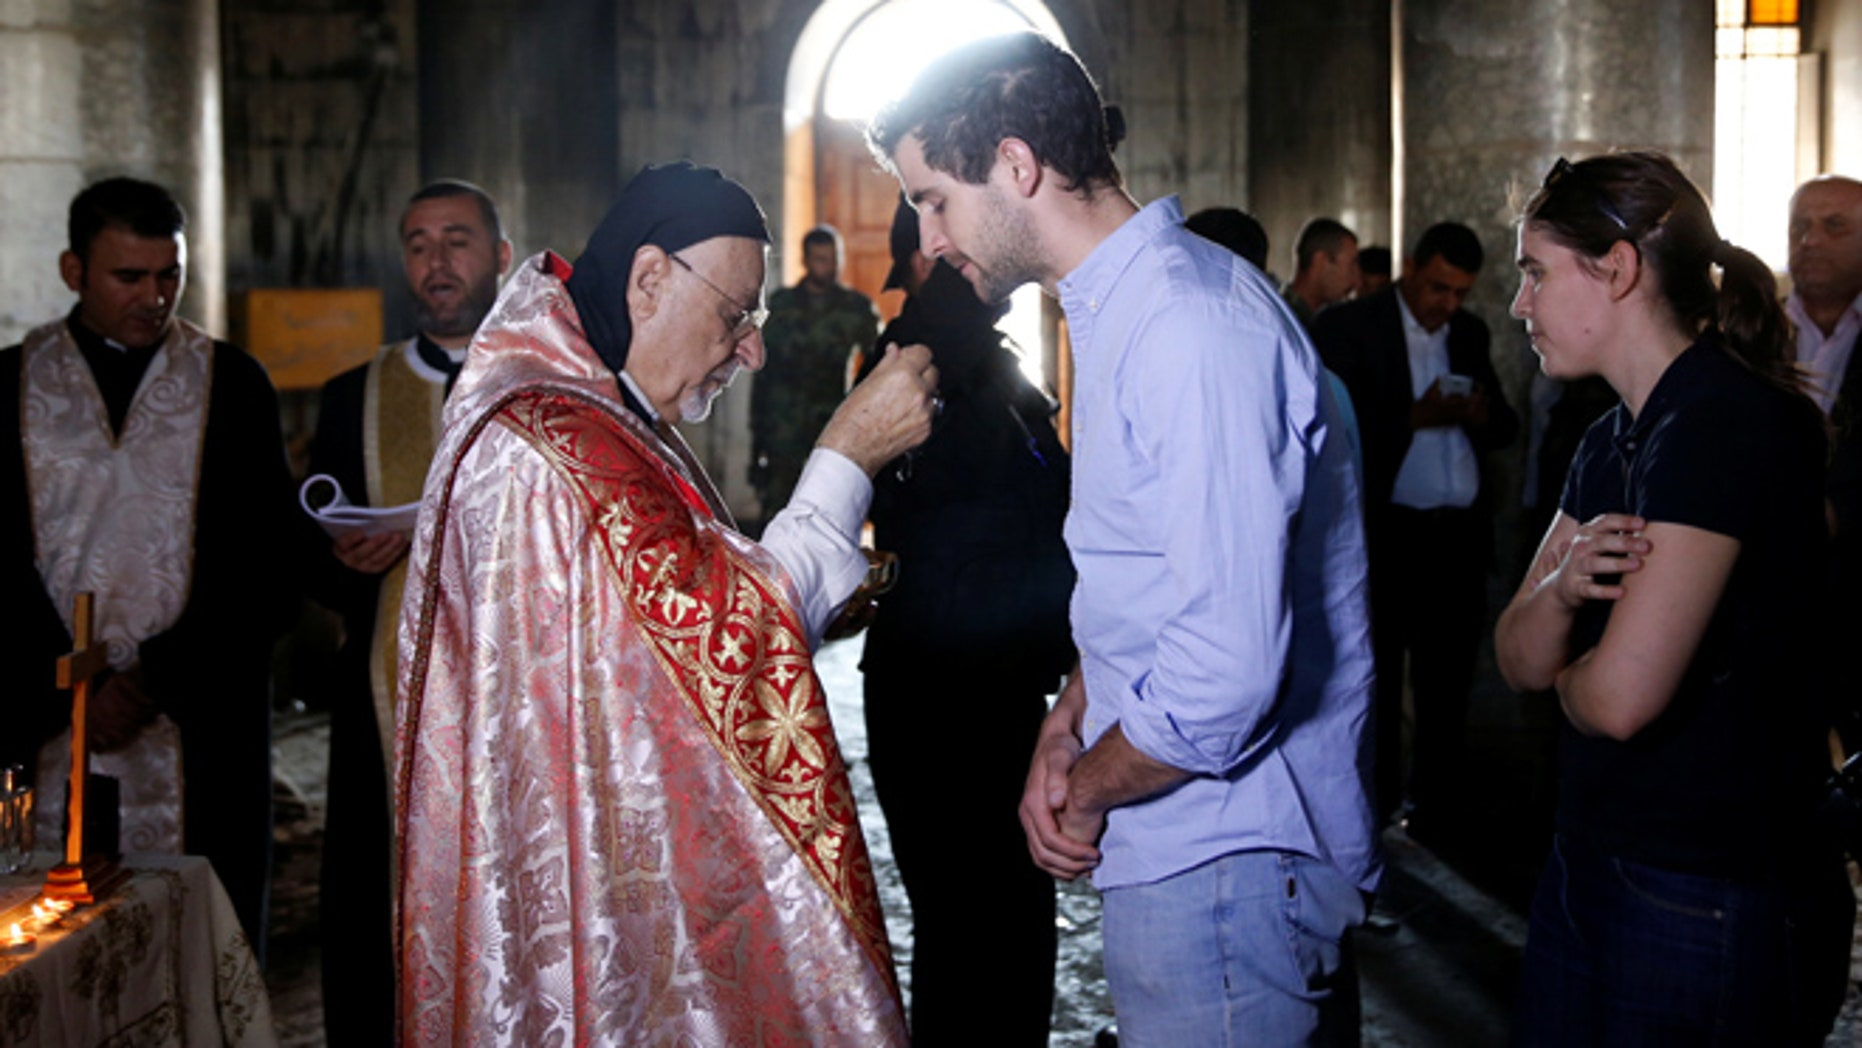 OCT 30: Iraqi priests hold the first Sunday mass at the Grand Immaculate Church since it was recaptured from Islamic State in Qaraqosh.